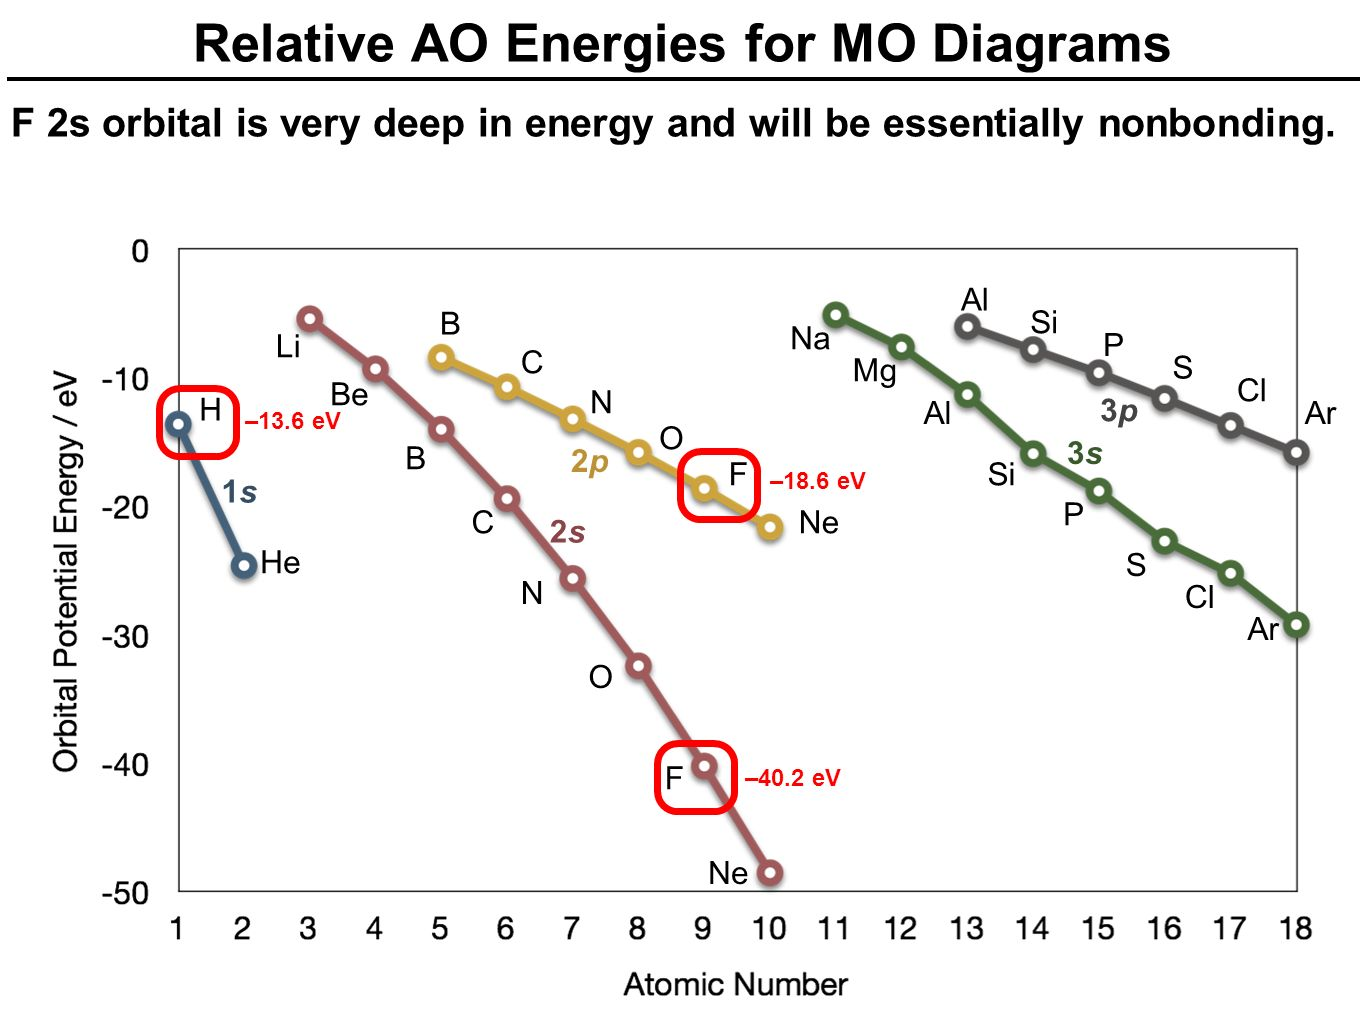 Mo diagrams for linear and bent molecules ppt video online download relative ao energies for mo diagrams pooptronica Choice Image